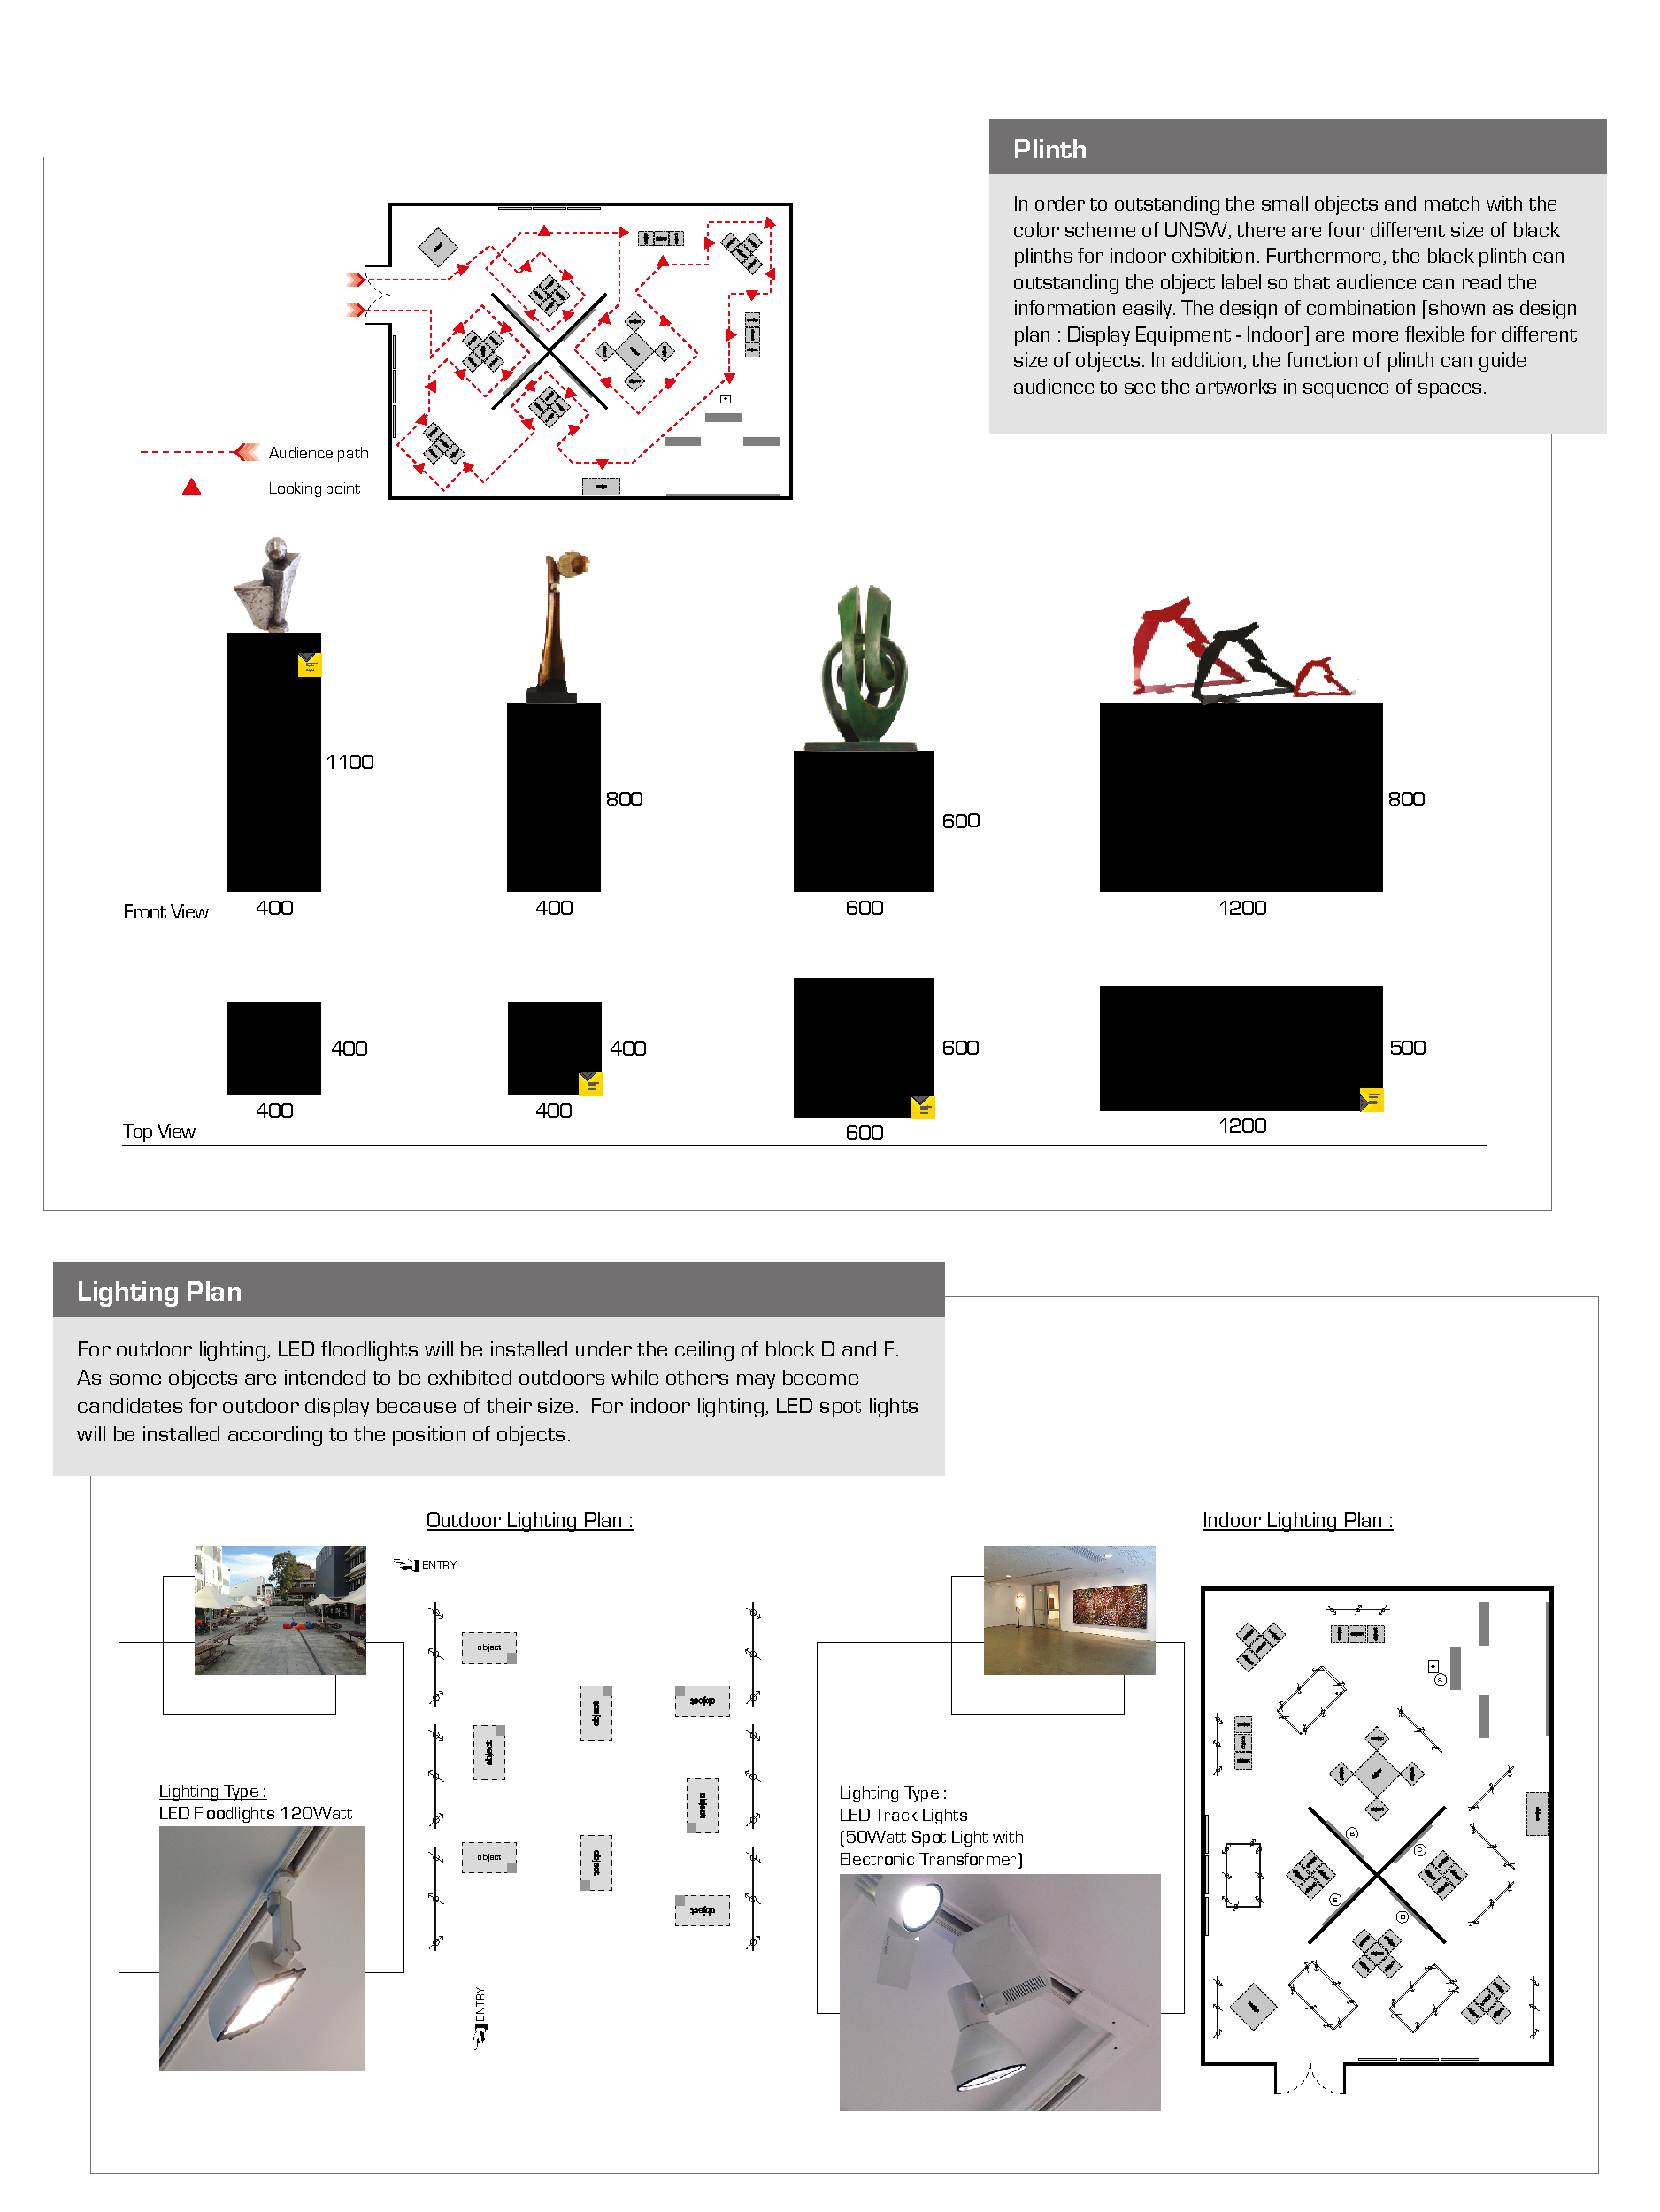 Exhibition Design Plan 4